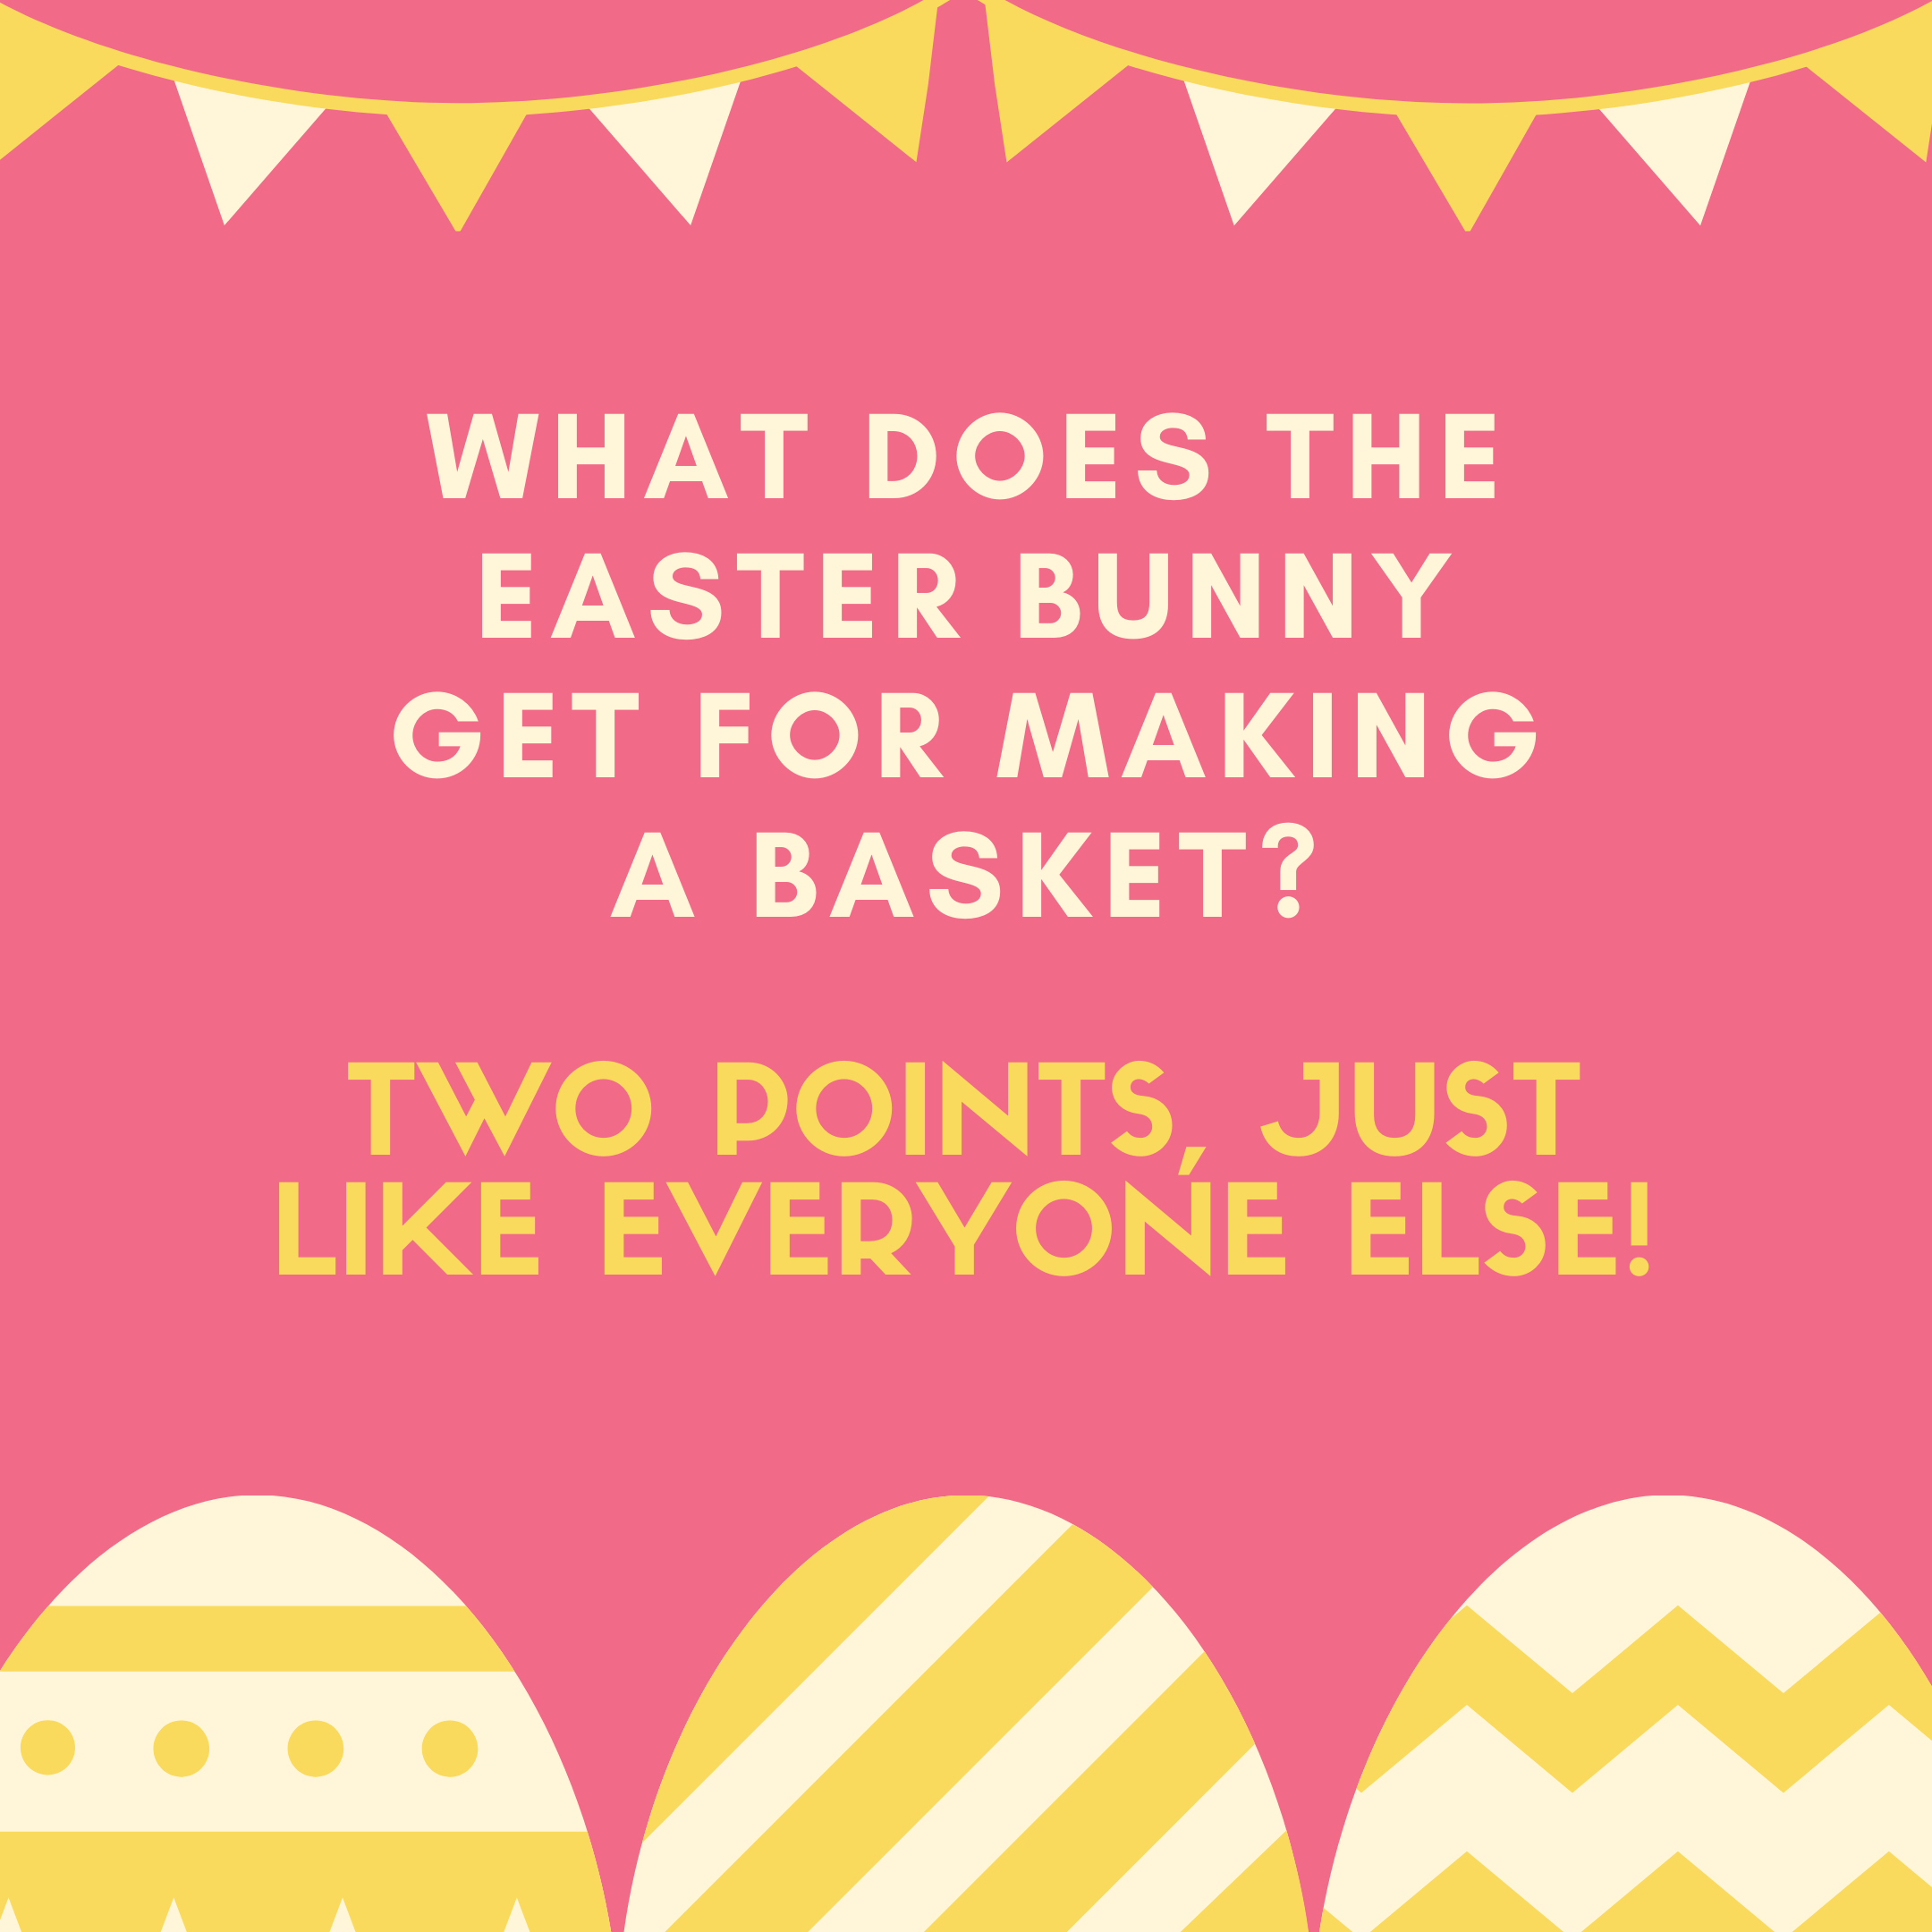 What does the Easter Bunny get for making a basket? Two points, just like everyone else!